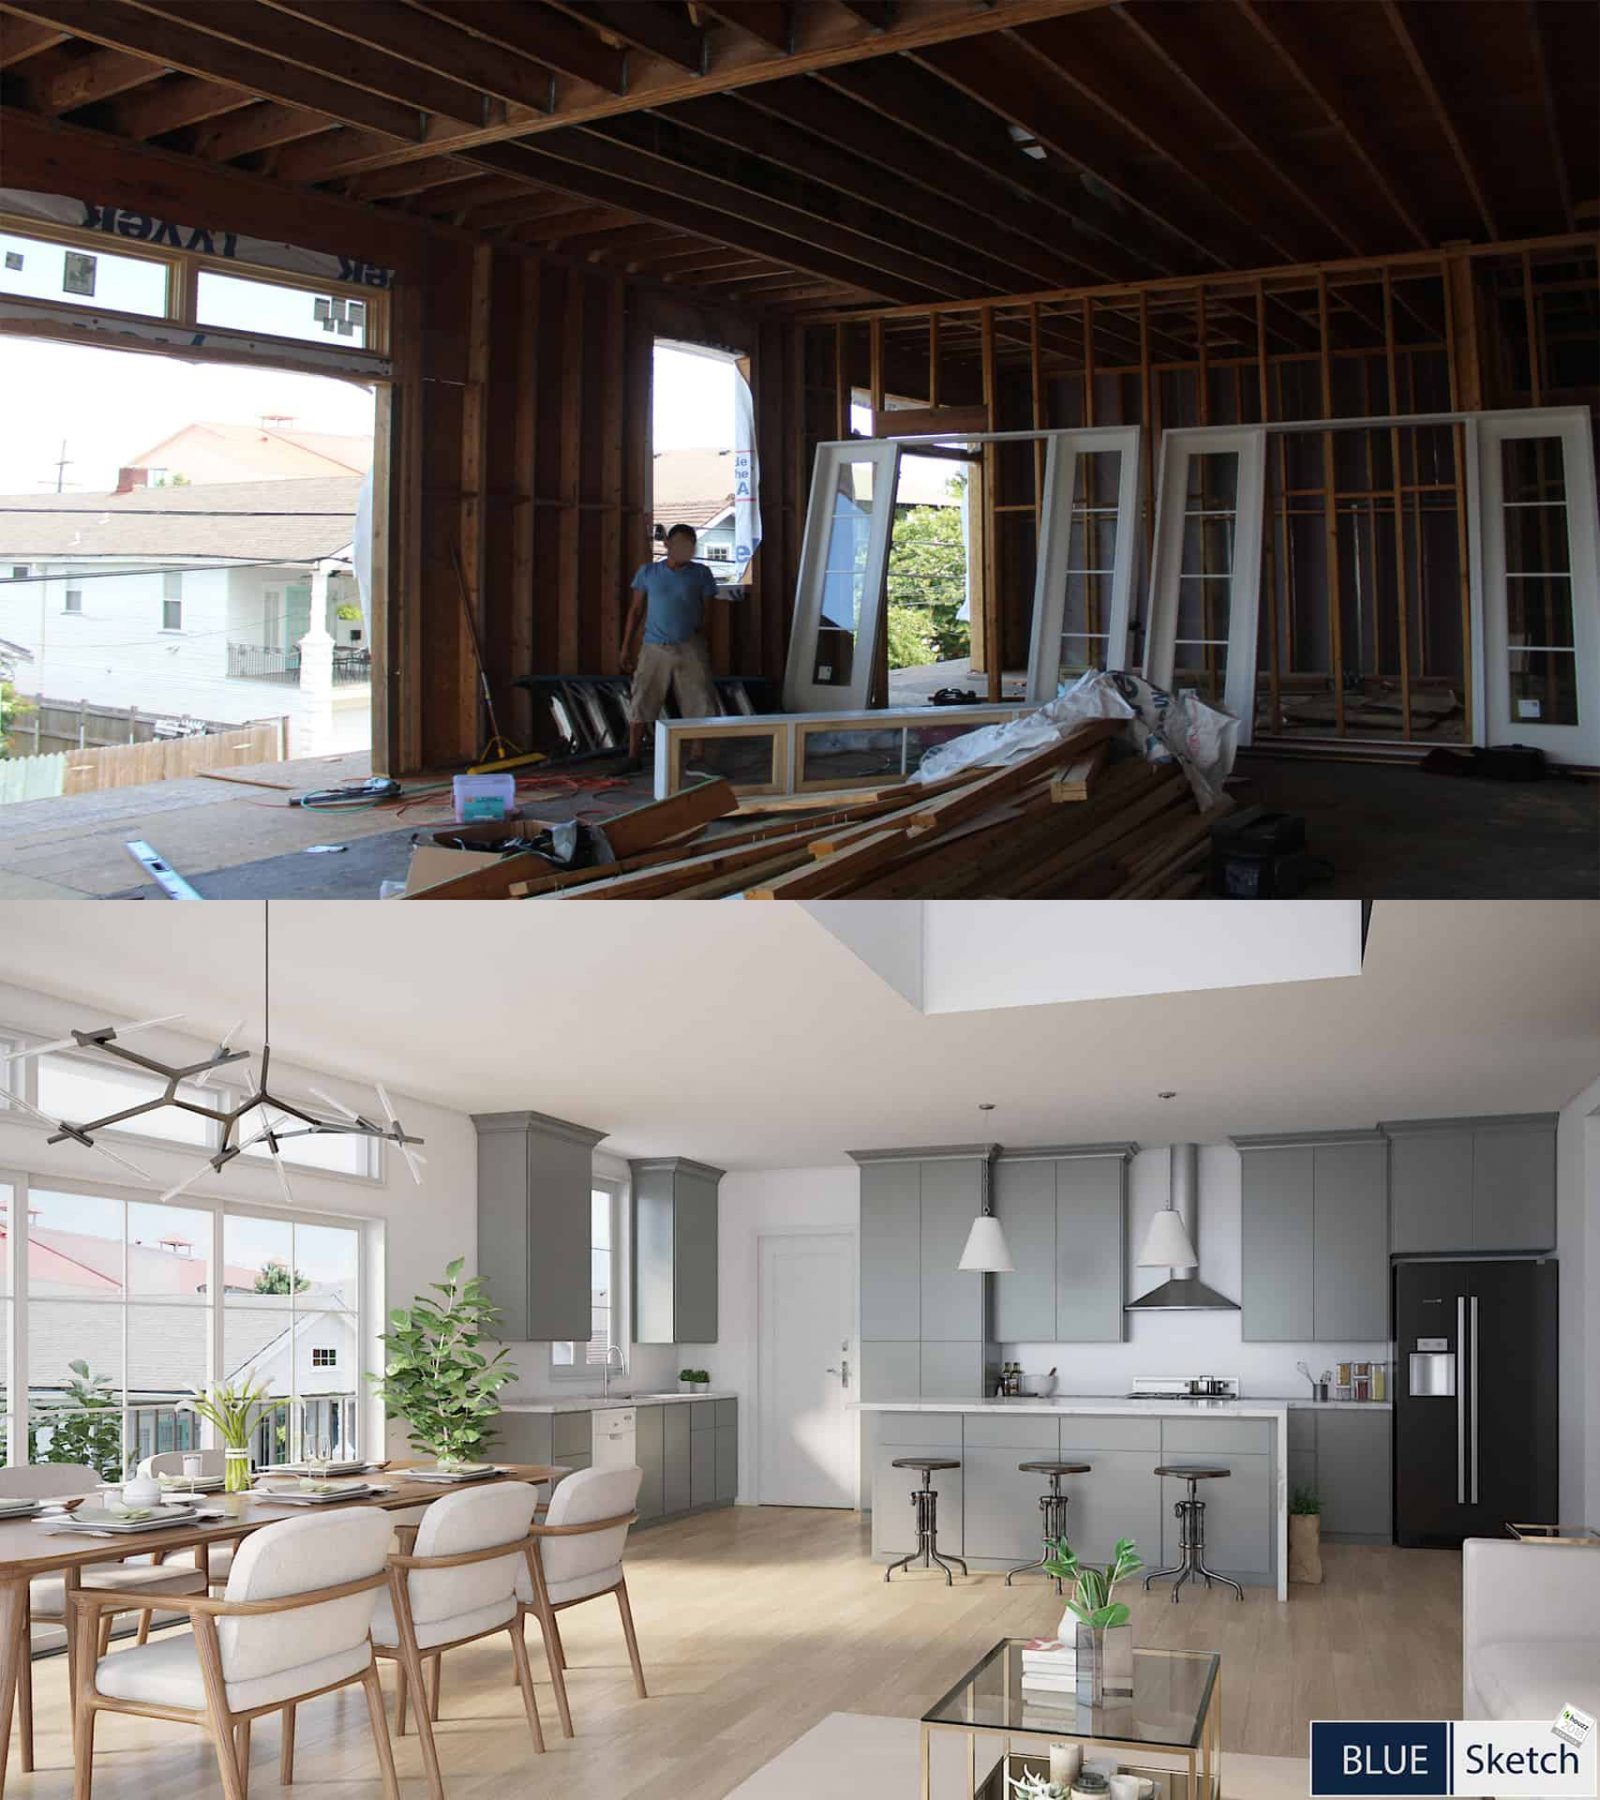 Virtual Staging and Renderings for Listing